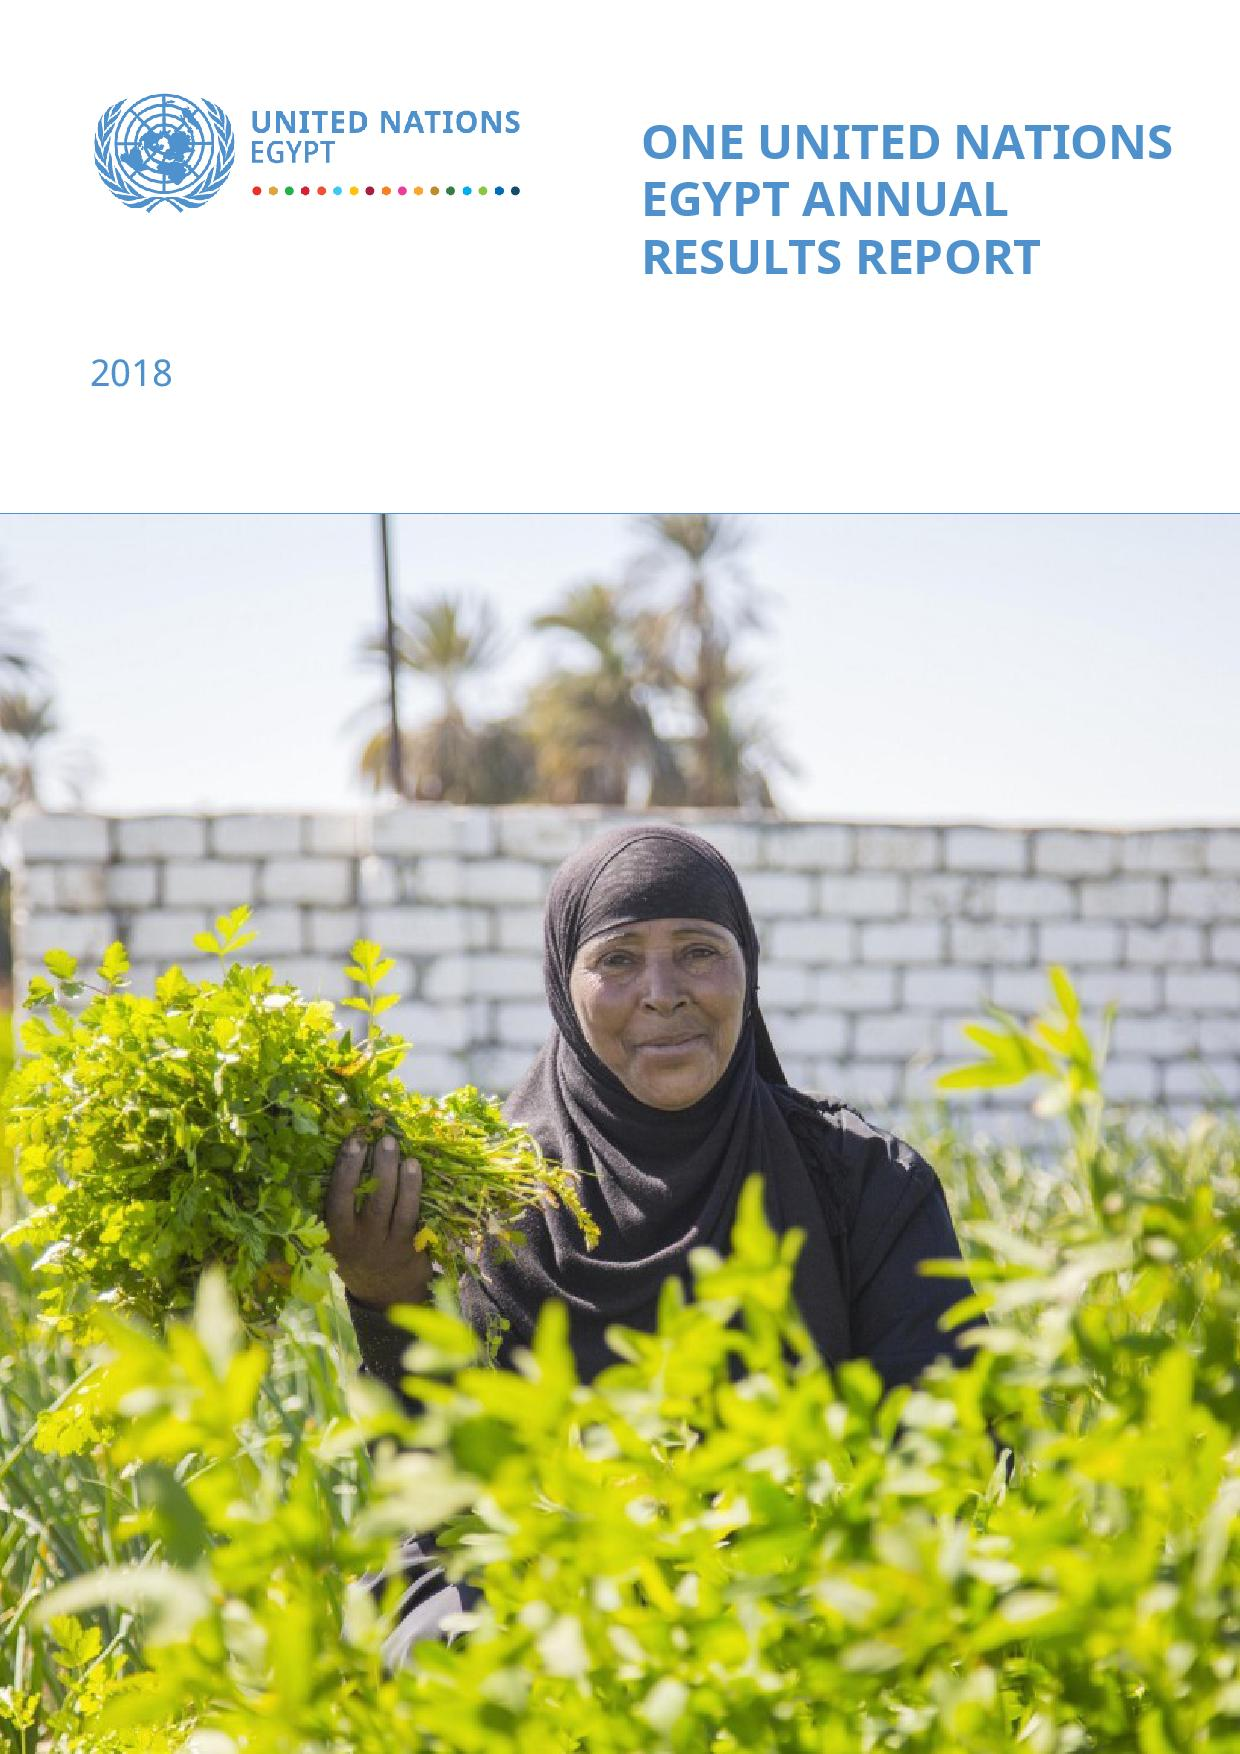 One United Nations Egypt Annual Results Report 2018